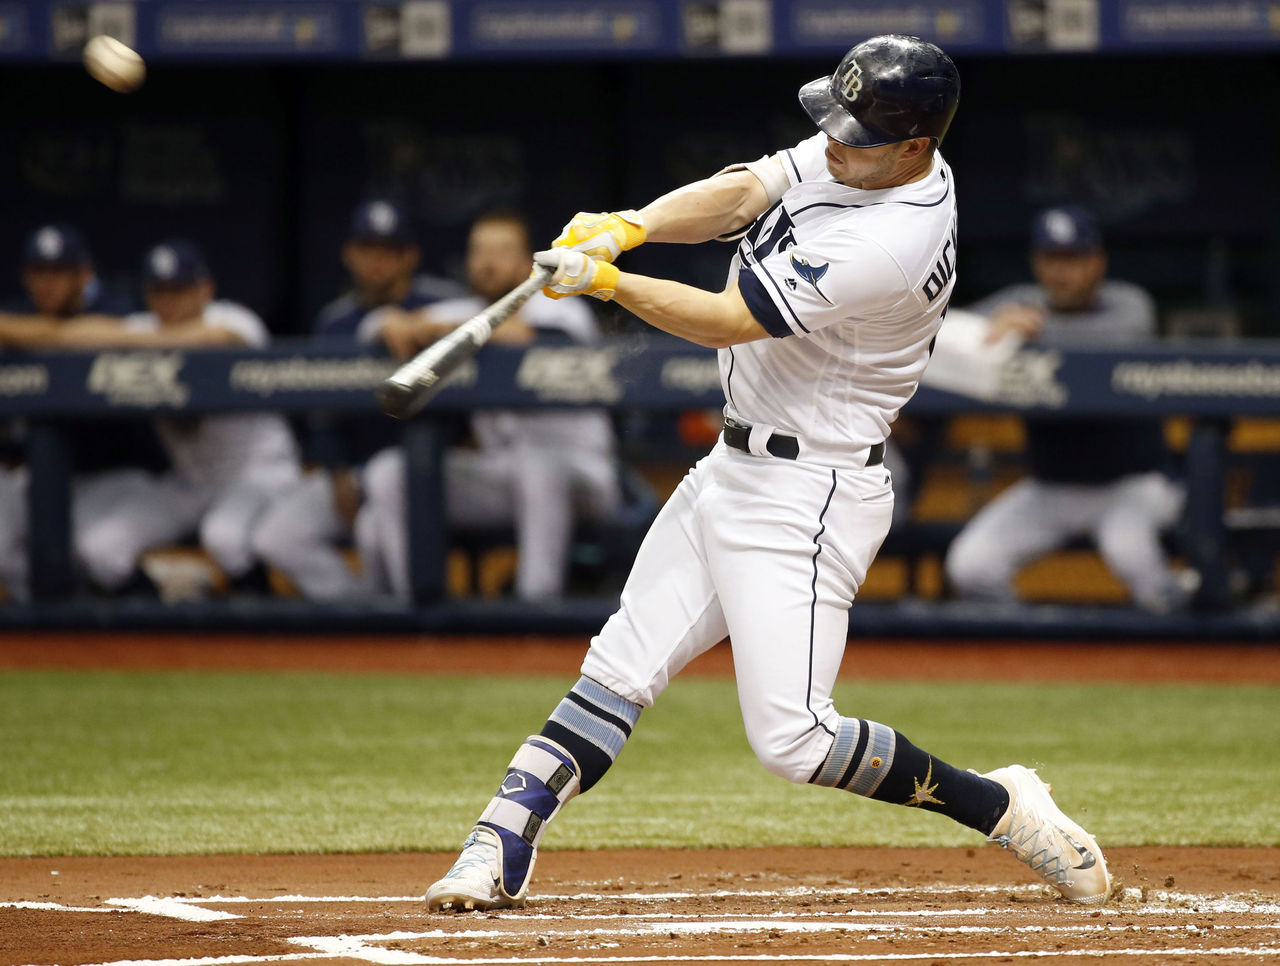 Cropped 2017 05 20t213335z 1160113984 nocid rtrmadp 3 mlb new york yankees at tampa bay rays